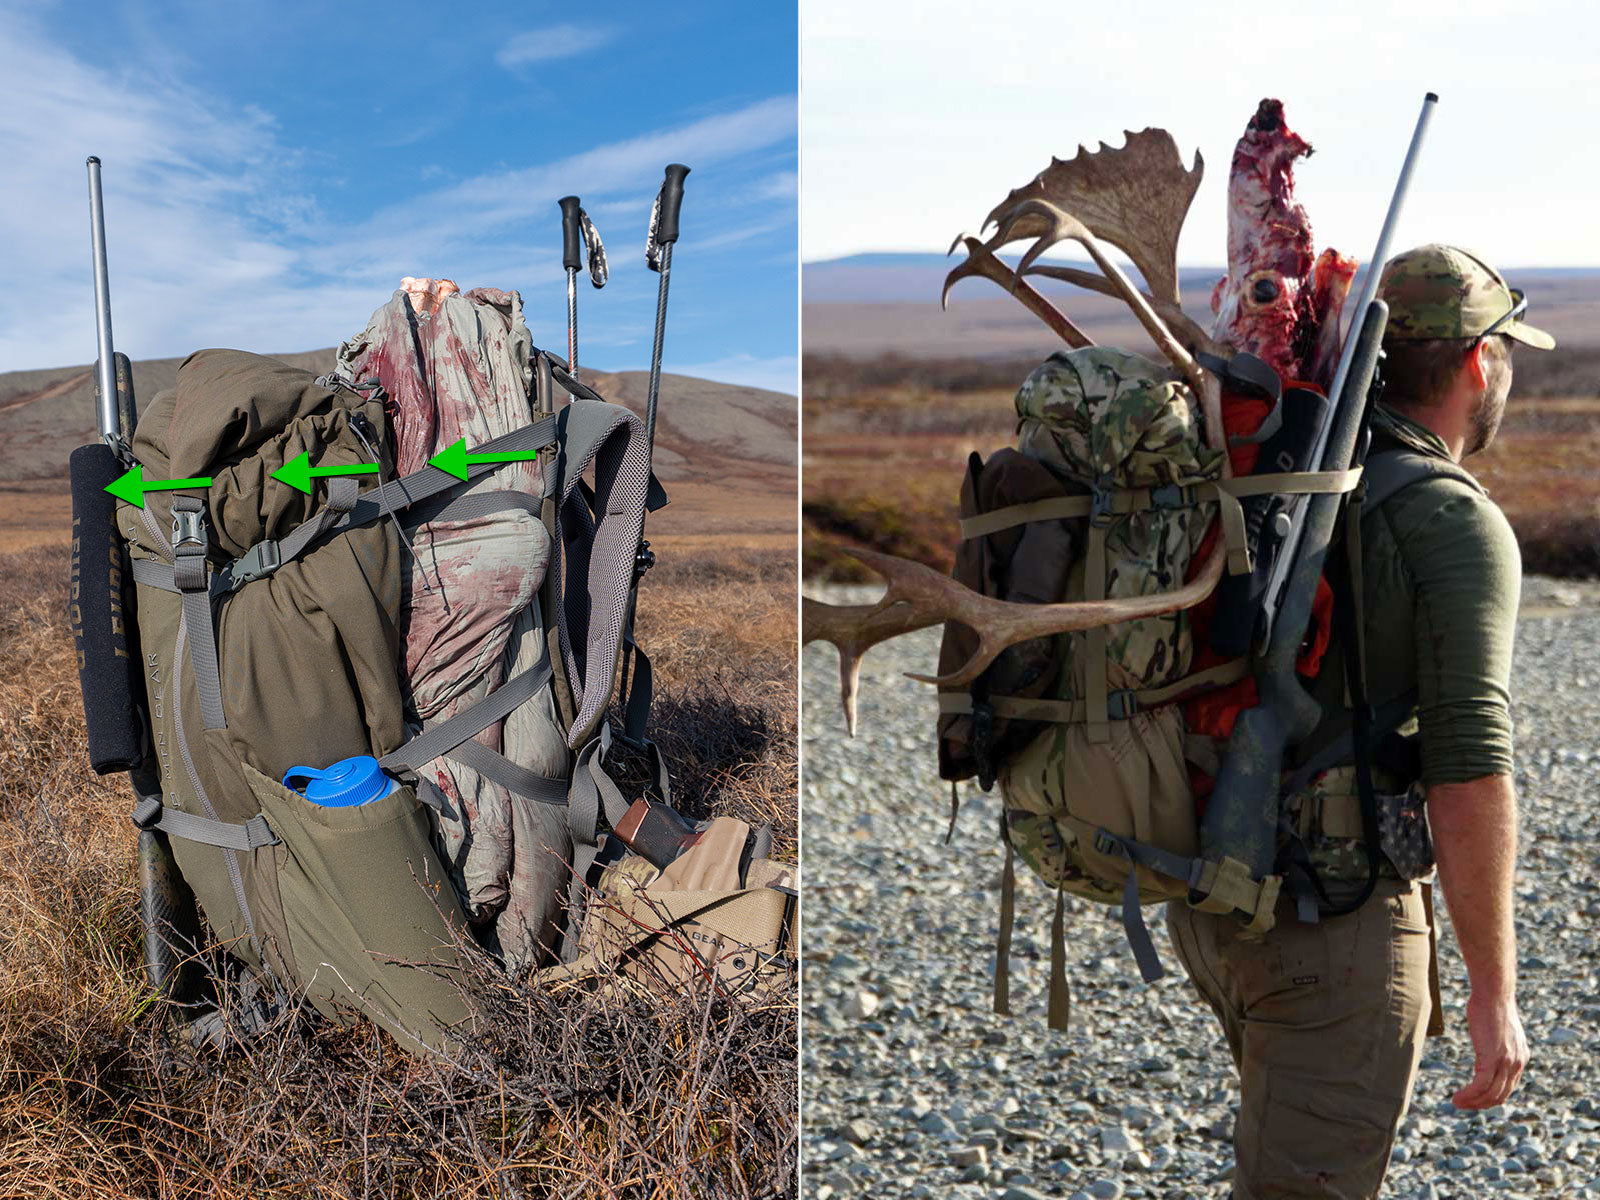 Rifle & Meat on K3 Packs